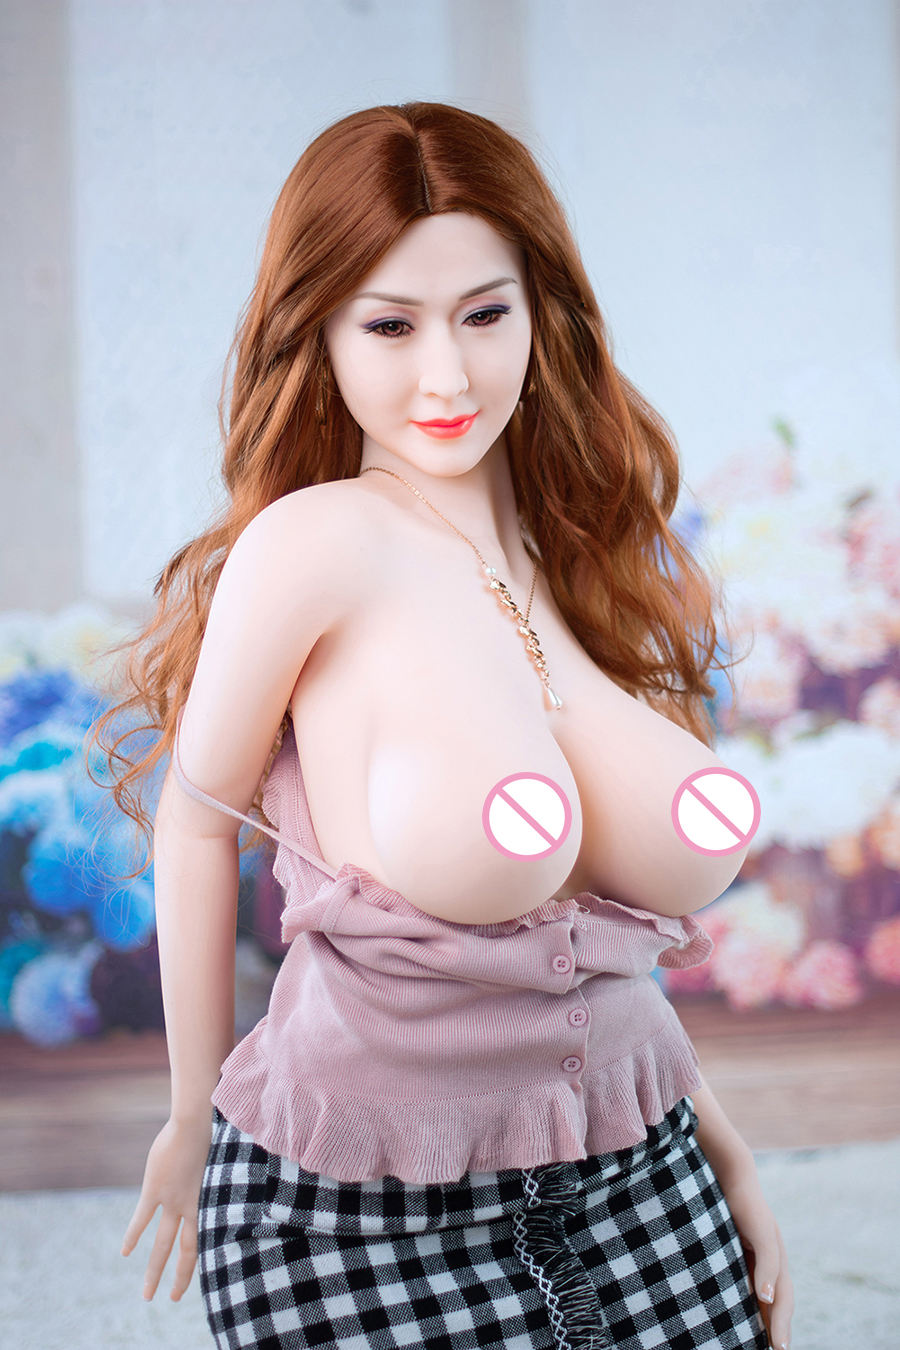 <font><b>170cm</b></font> <font><b>Sex</b></font> <font><b>Dolls</b></font> Real Adult Life Big Breast Vagina <font><b>Sex</b></font> Toys for Men Tpe <font><b>Dolls</b></font>, Full Size Silicone with skeleton Love <font><b>Doll</b></font> image